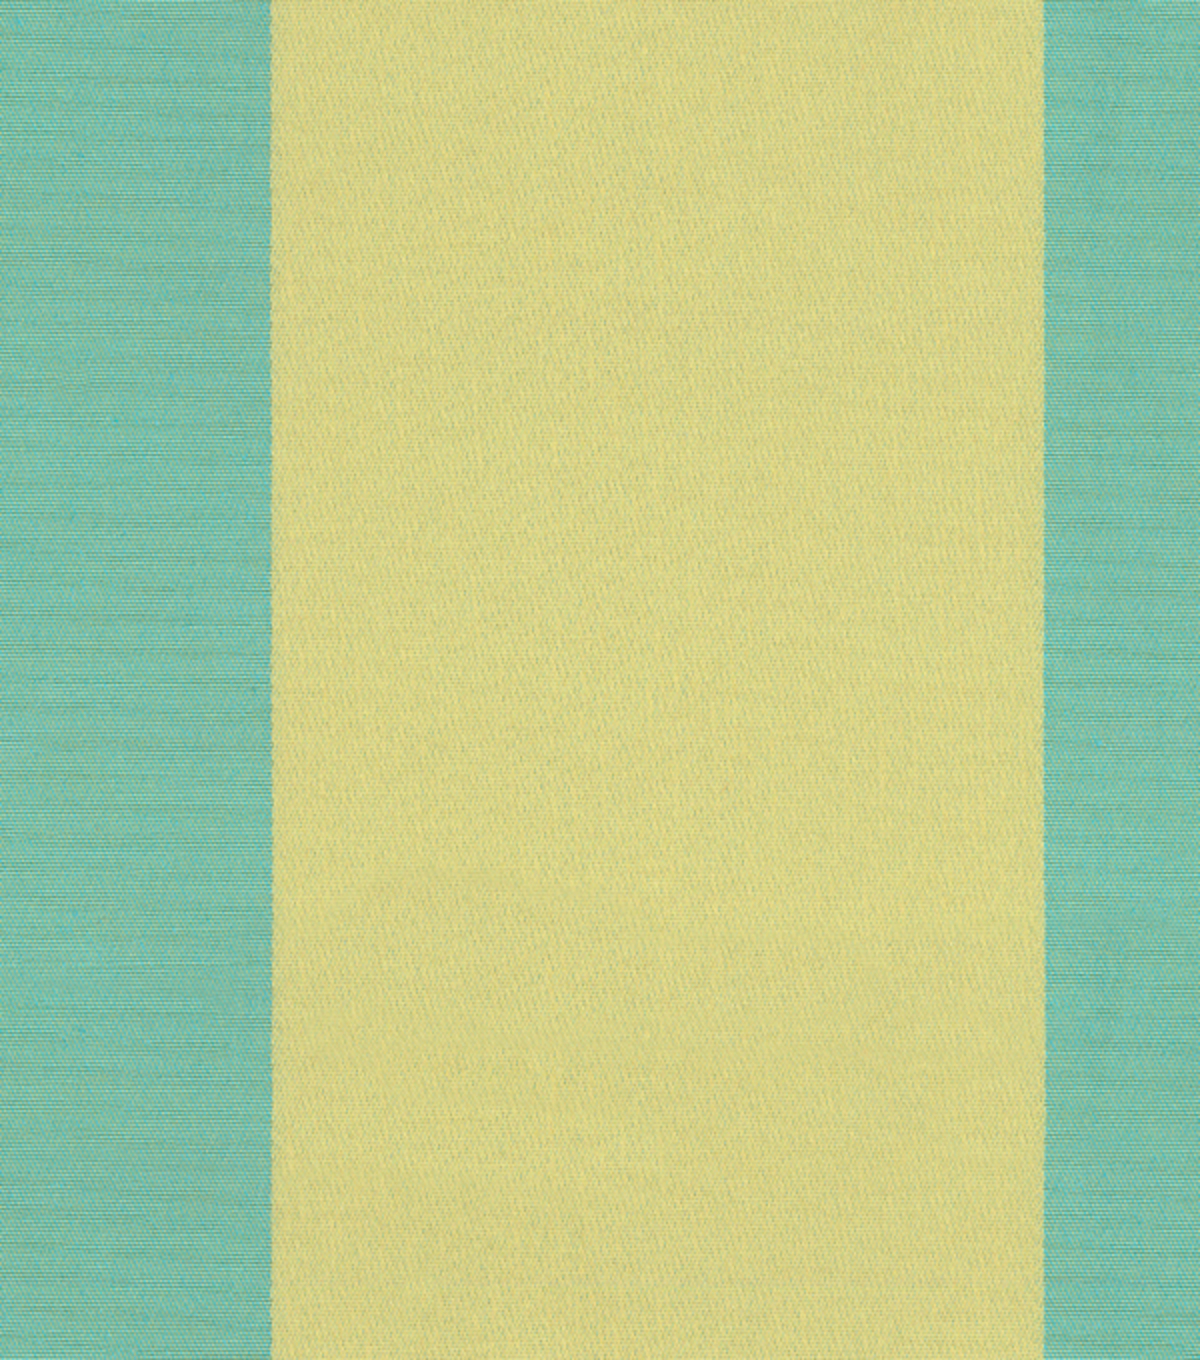 Home Decor 8\u0022x8\u0022 Fabric Swatch-Covington Savvy Awning